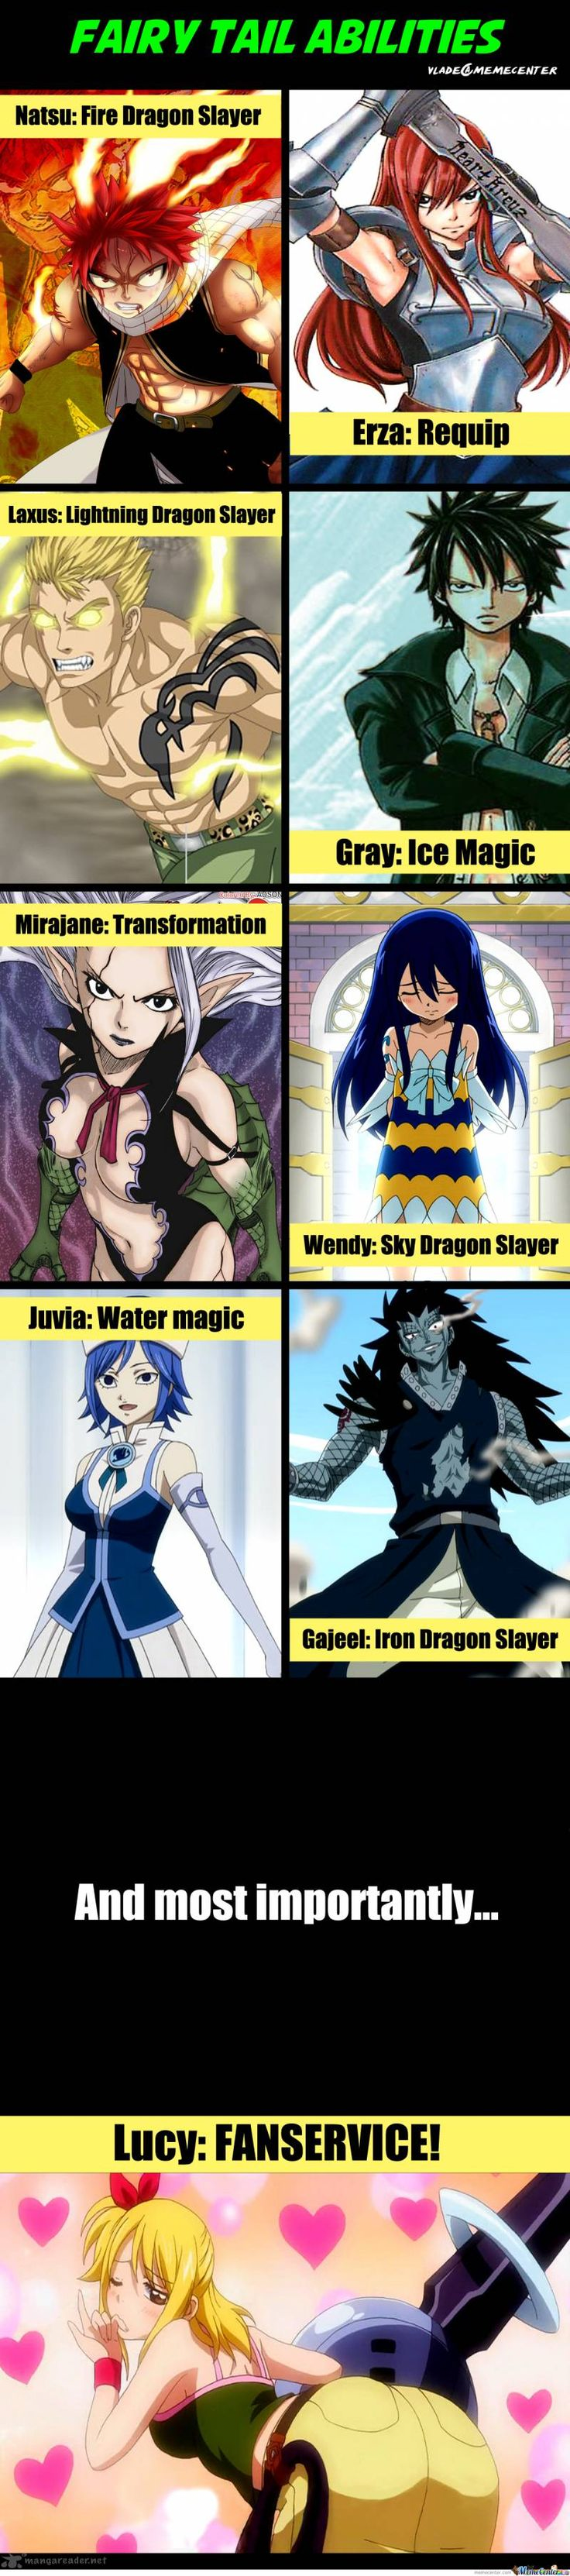 Fairy Tail, lol